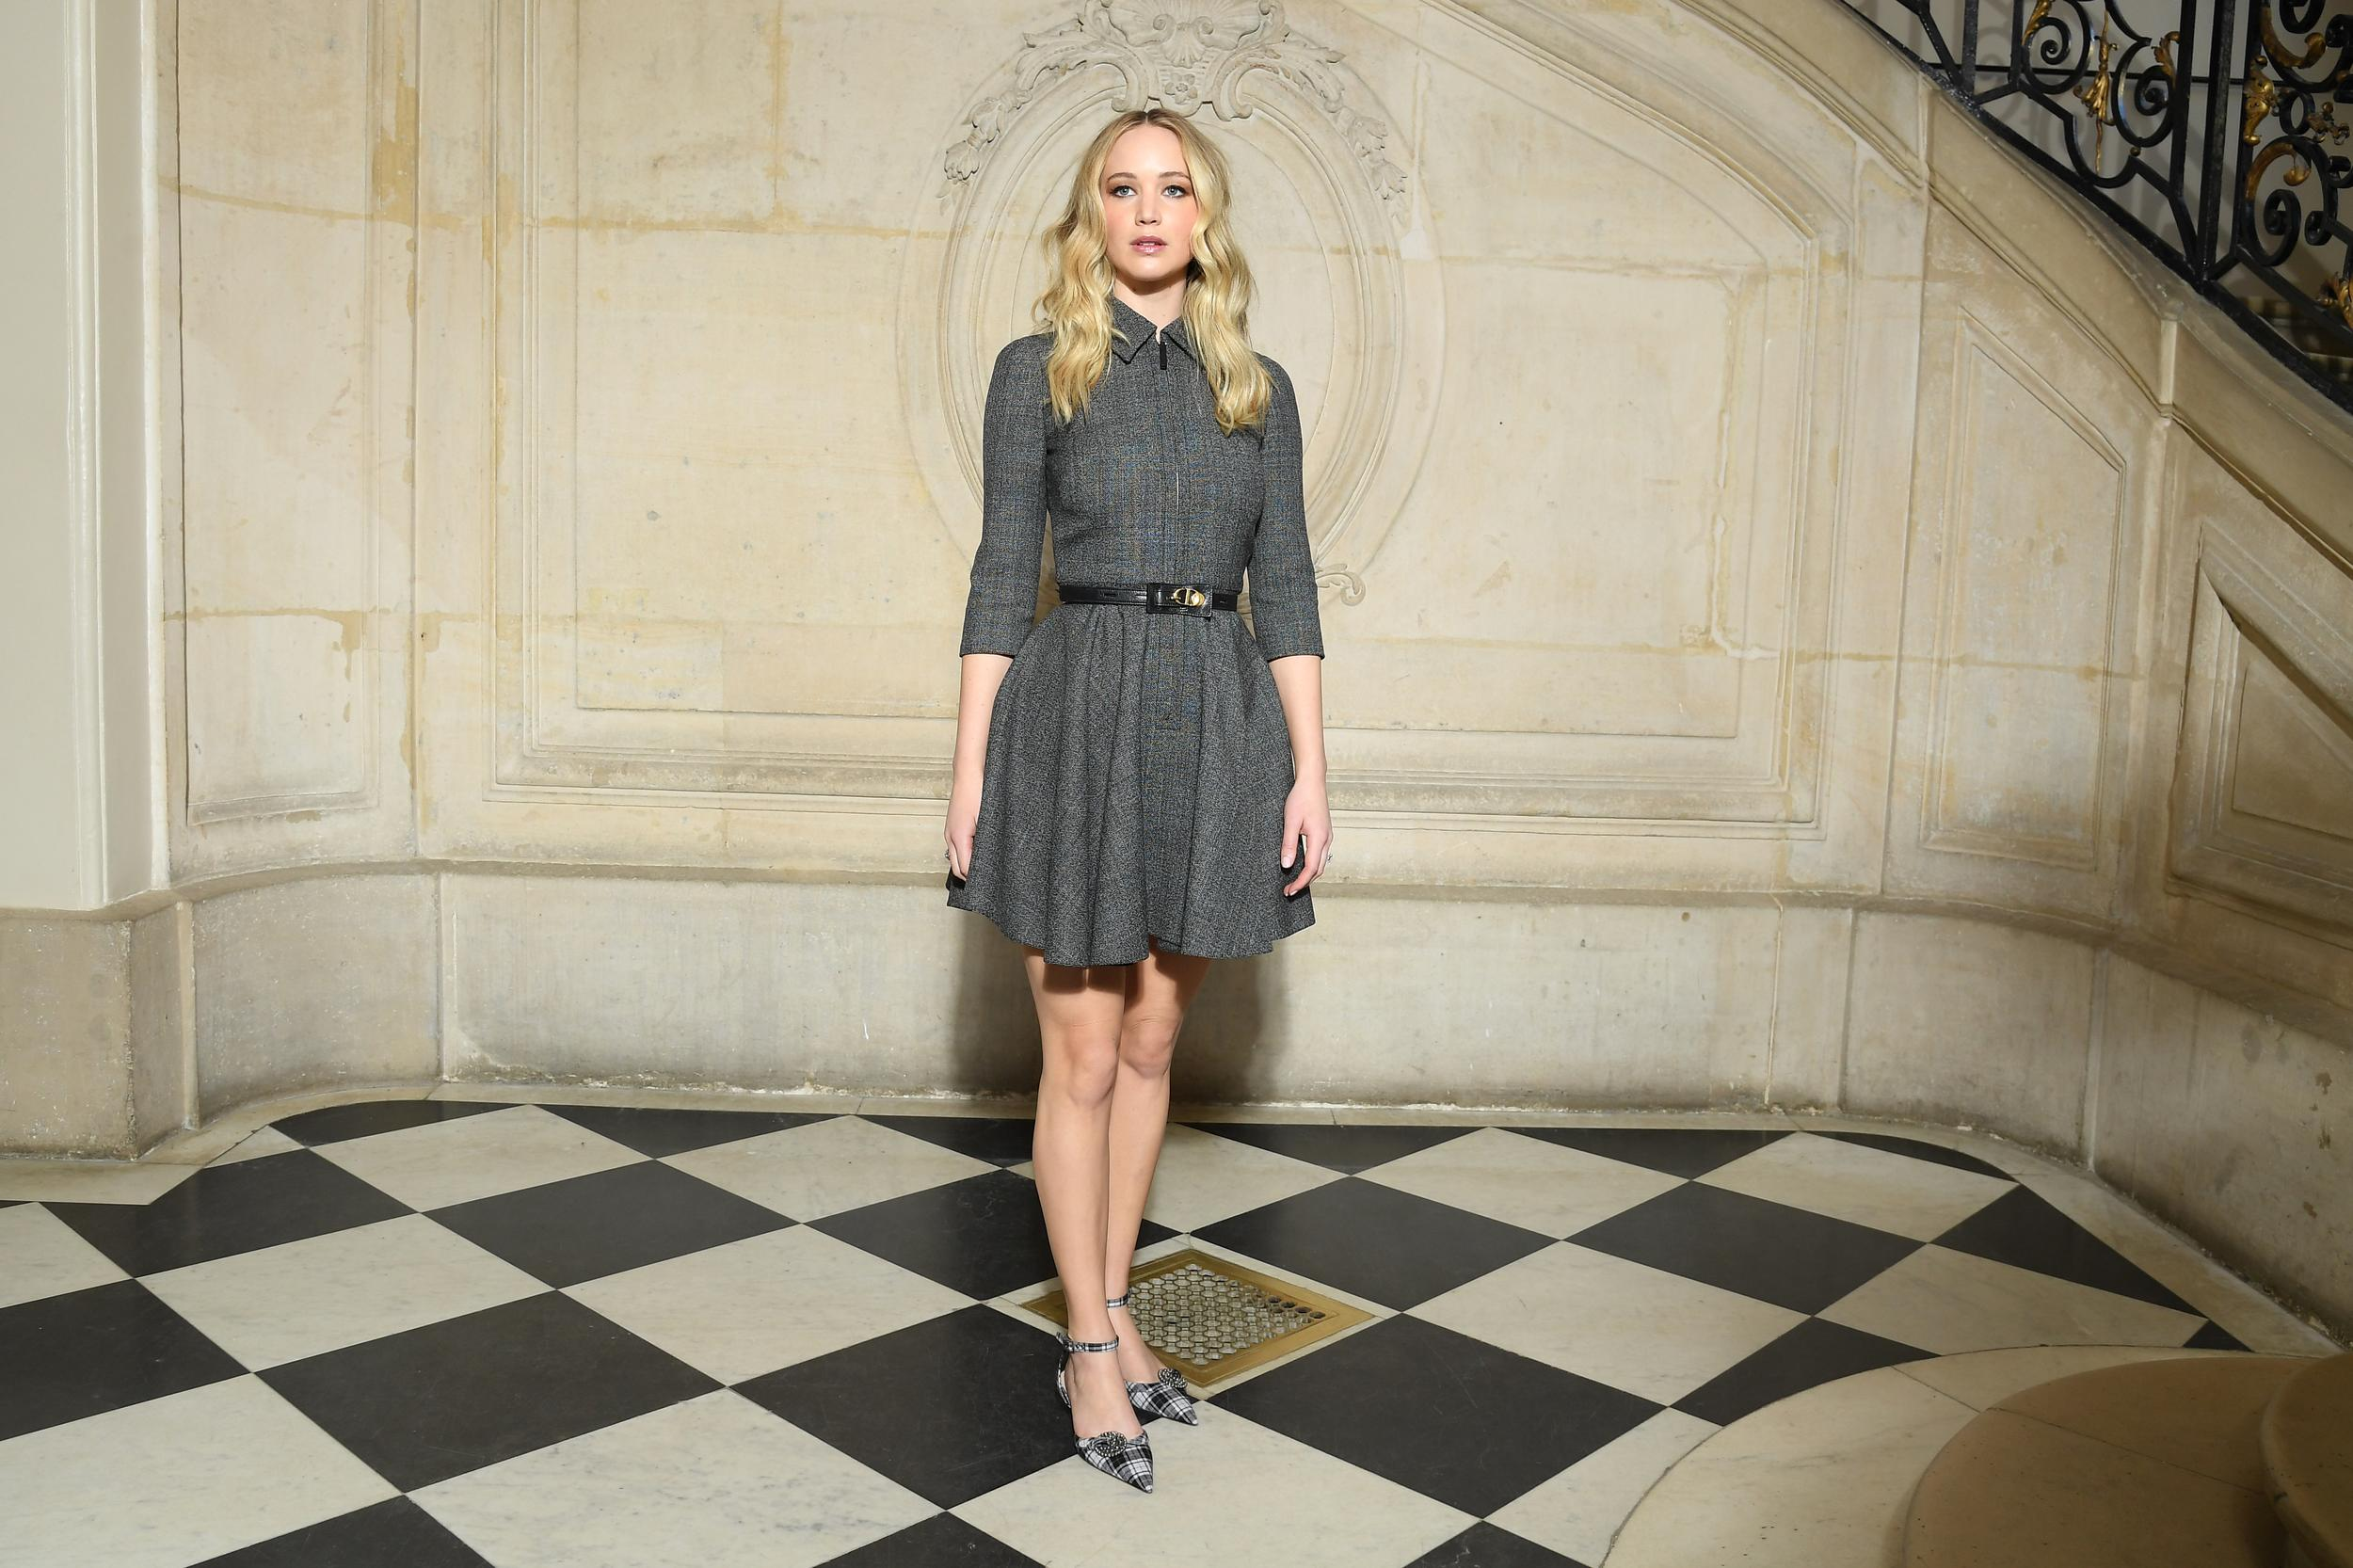 PARIS, FRANCE - FEBRUARY 26: Jennifer Lawrence attends the Christian Dior show as part of the Paris Fashion Week Womenswear Fall/Winter 2019/2020 on February 26, 2019 in Paris, France. (Photo by Pascal Le Segretain/Getty Images)